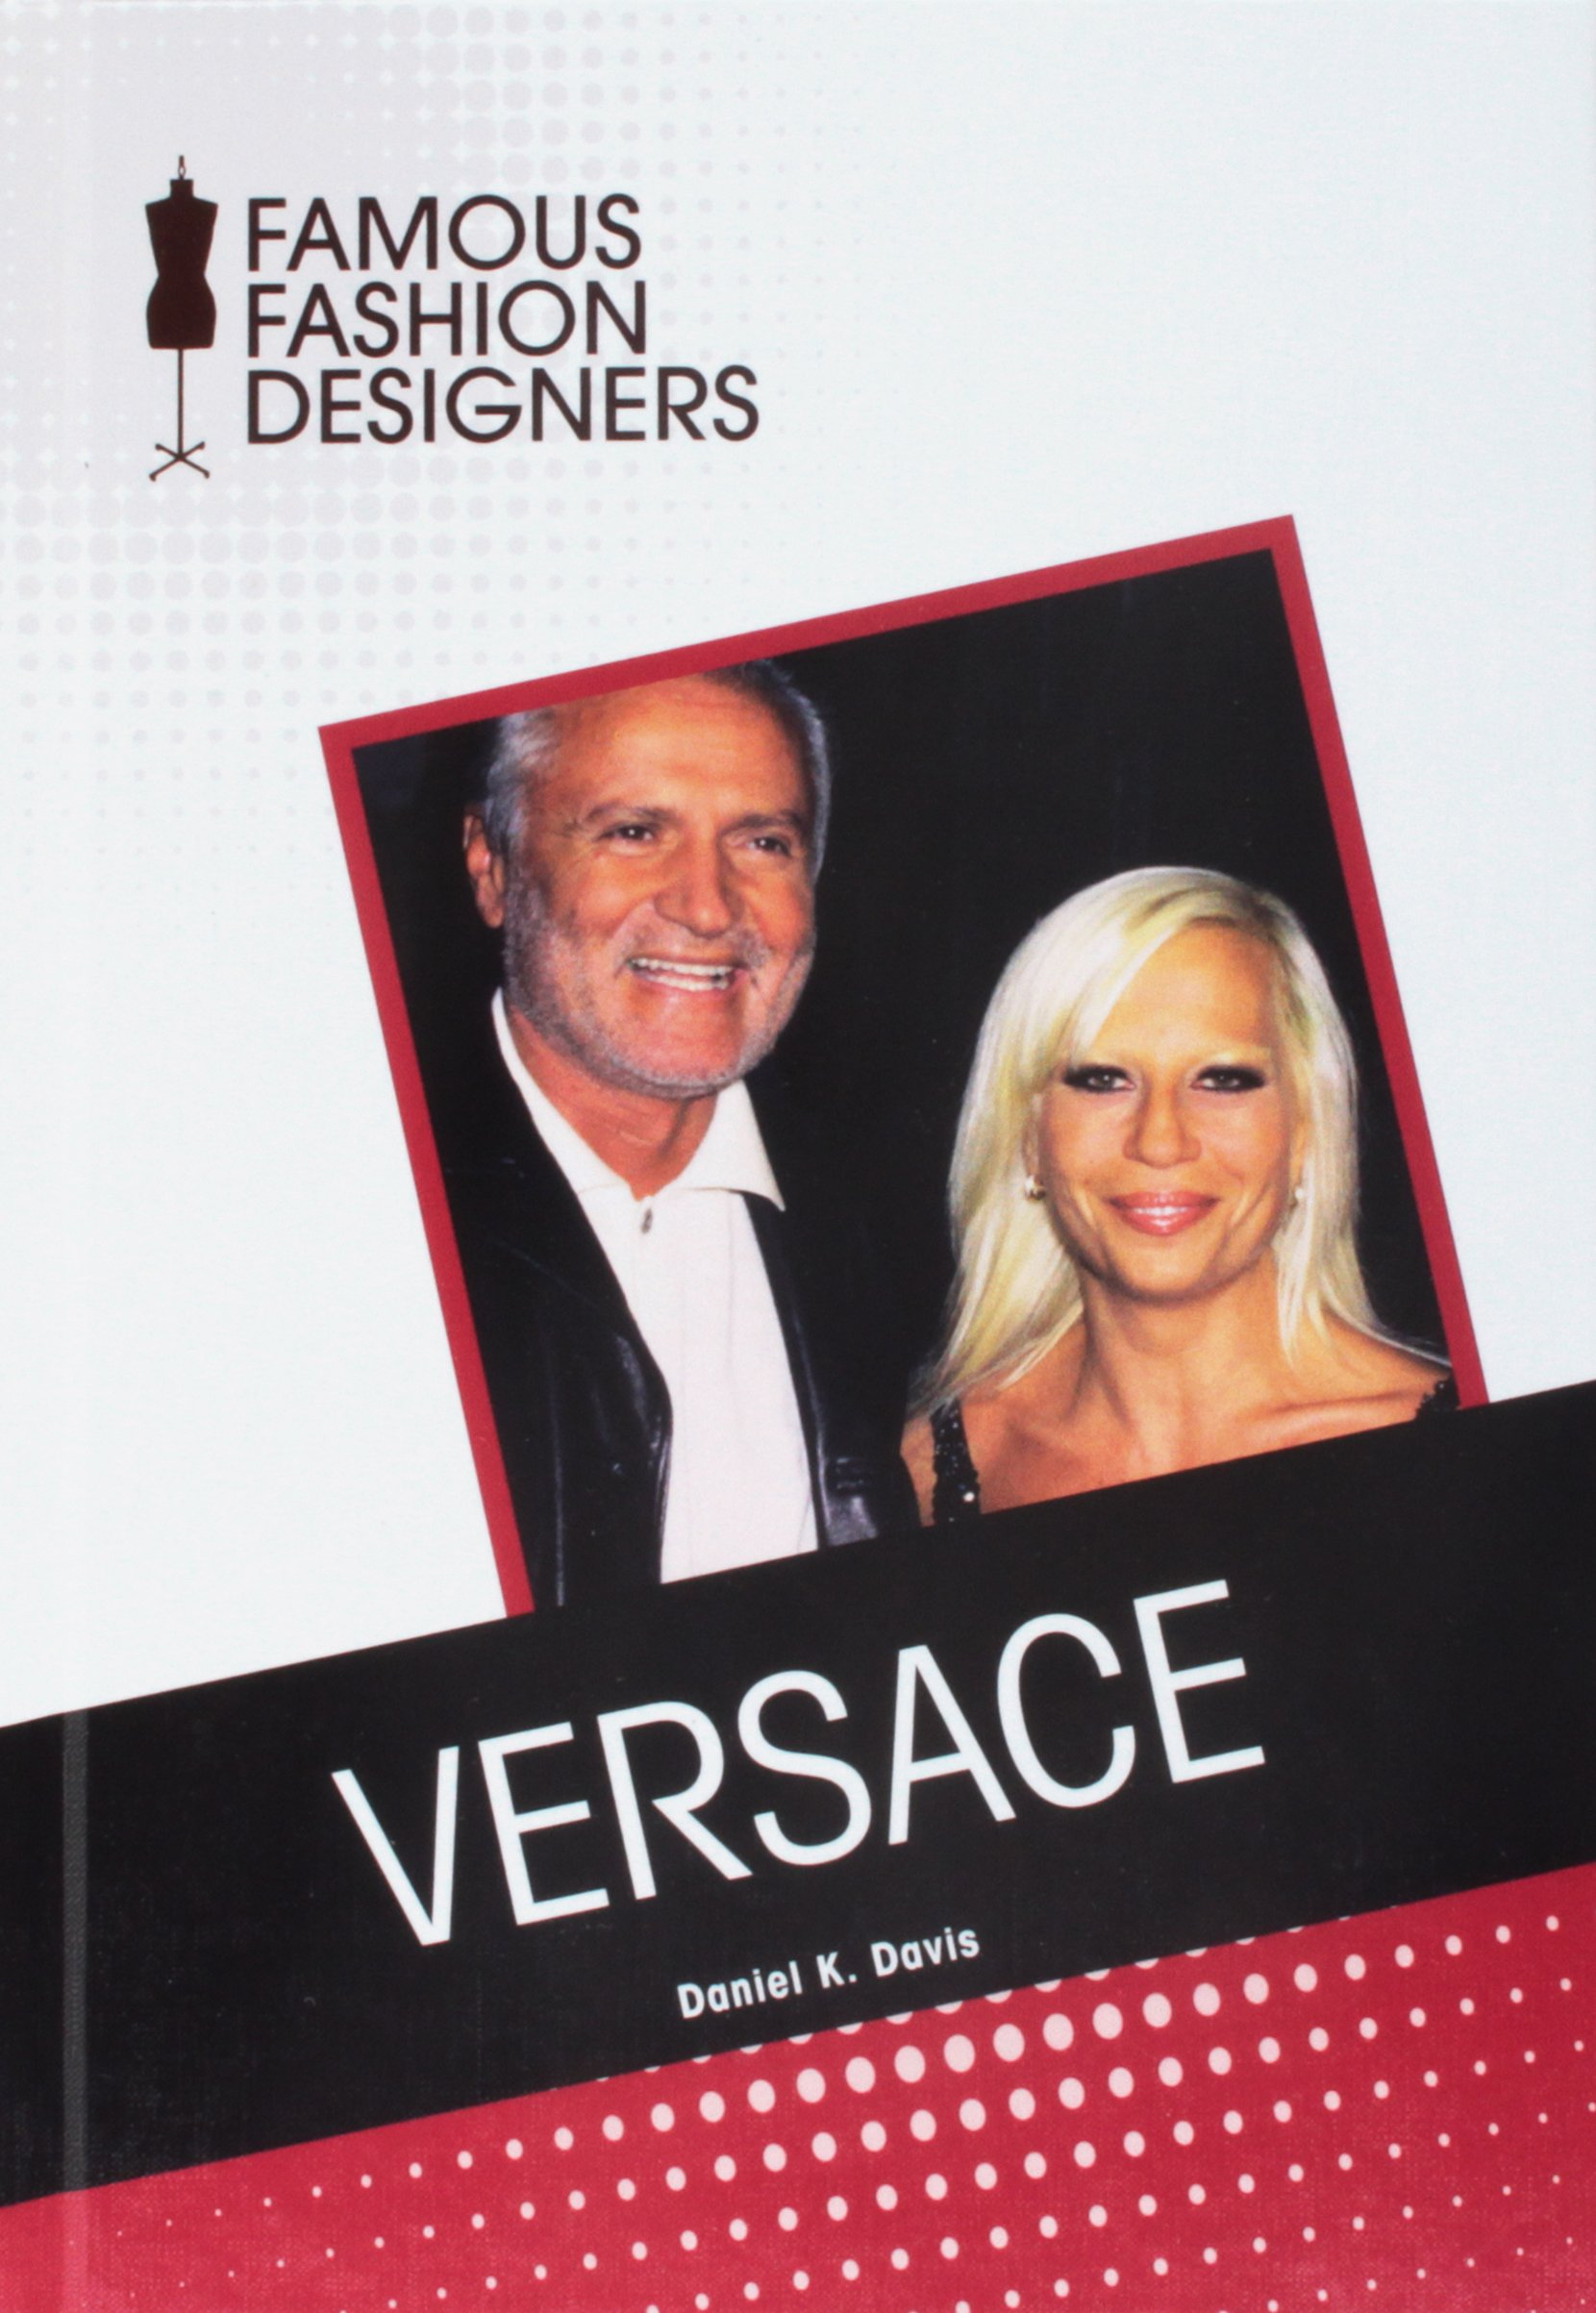 Amazon Com Versace Famous Fashion Designers 9781604139808 Davis Daniel K Books